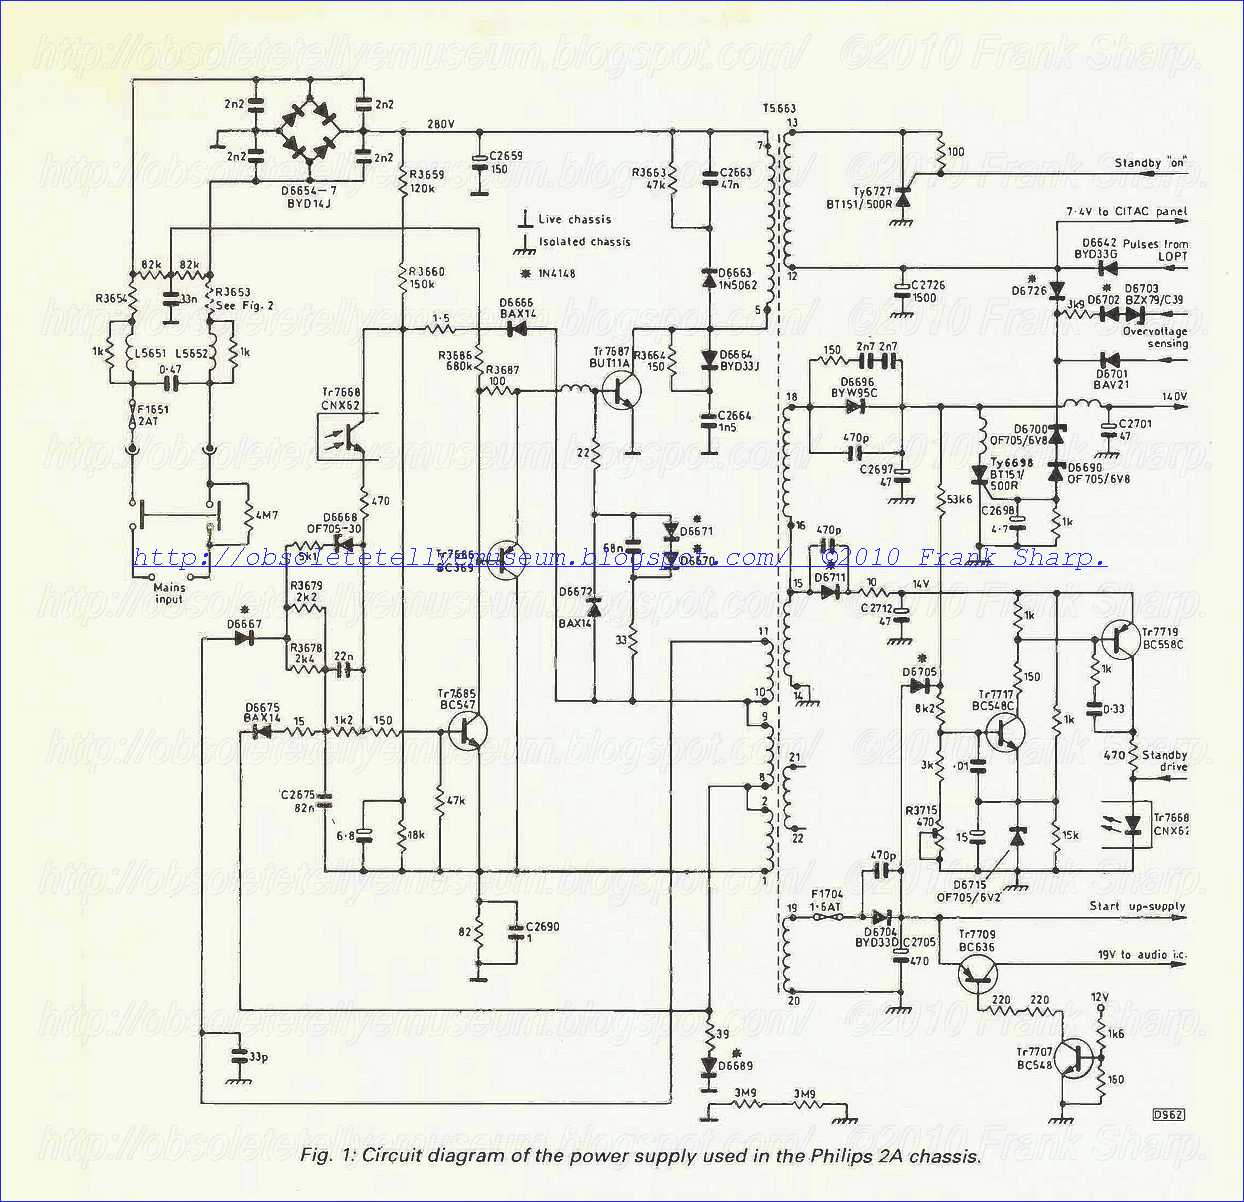 Obsolete Technology Tellye Philips 26ce2281 Rubens Chassis 2a Phillips Wiring Diagrams 1 Shows The Circuit Most Common Problem Is Failure Of But11 Chopper Transistor Tr7687 In This Event Mains Fuse F1651 Will Usually Be Blackened